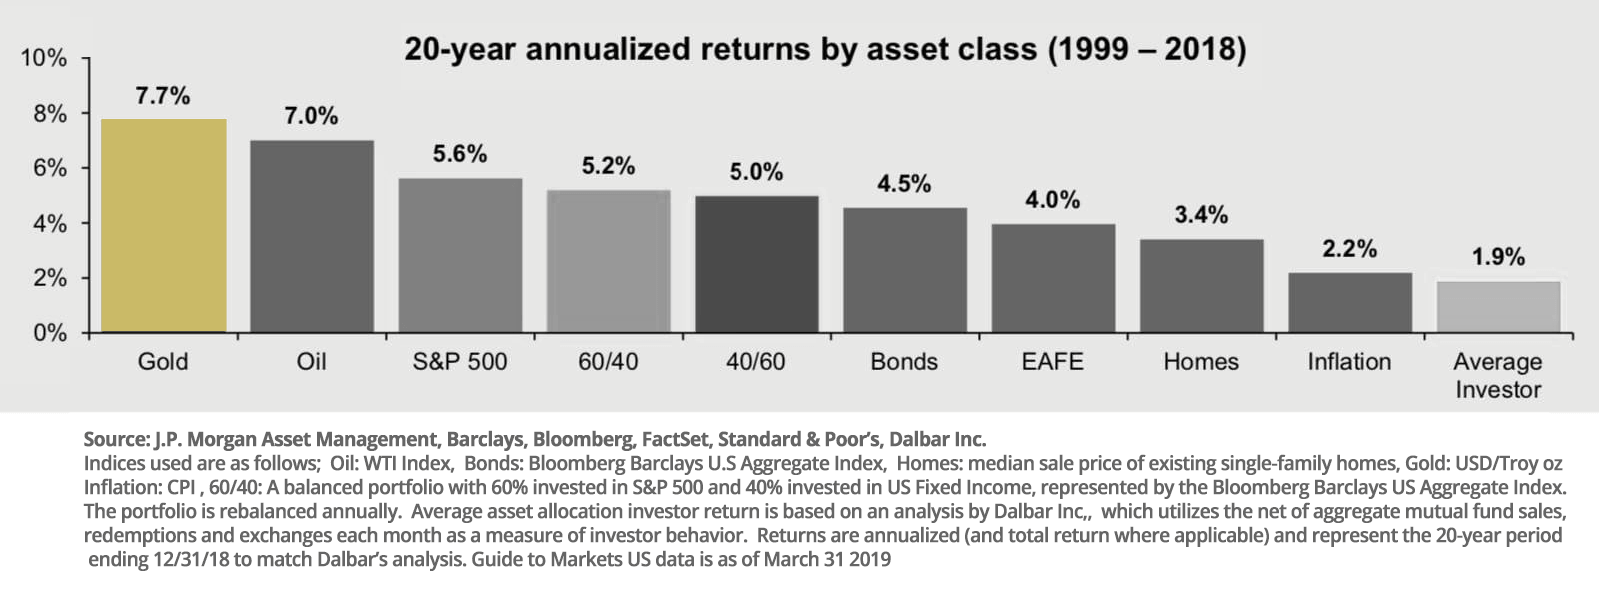 gold investing annual return vs other investments